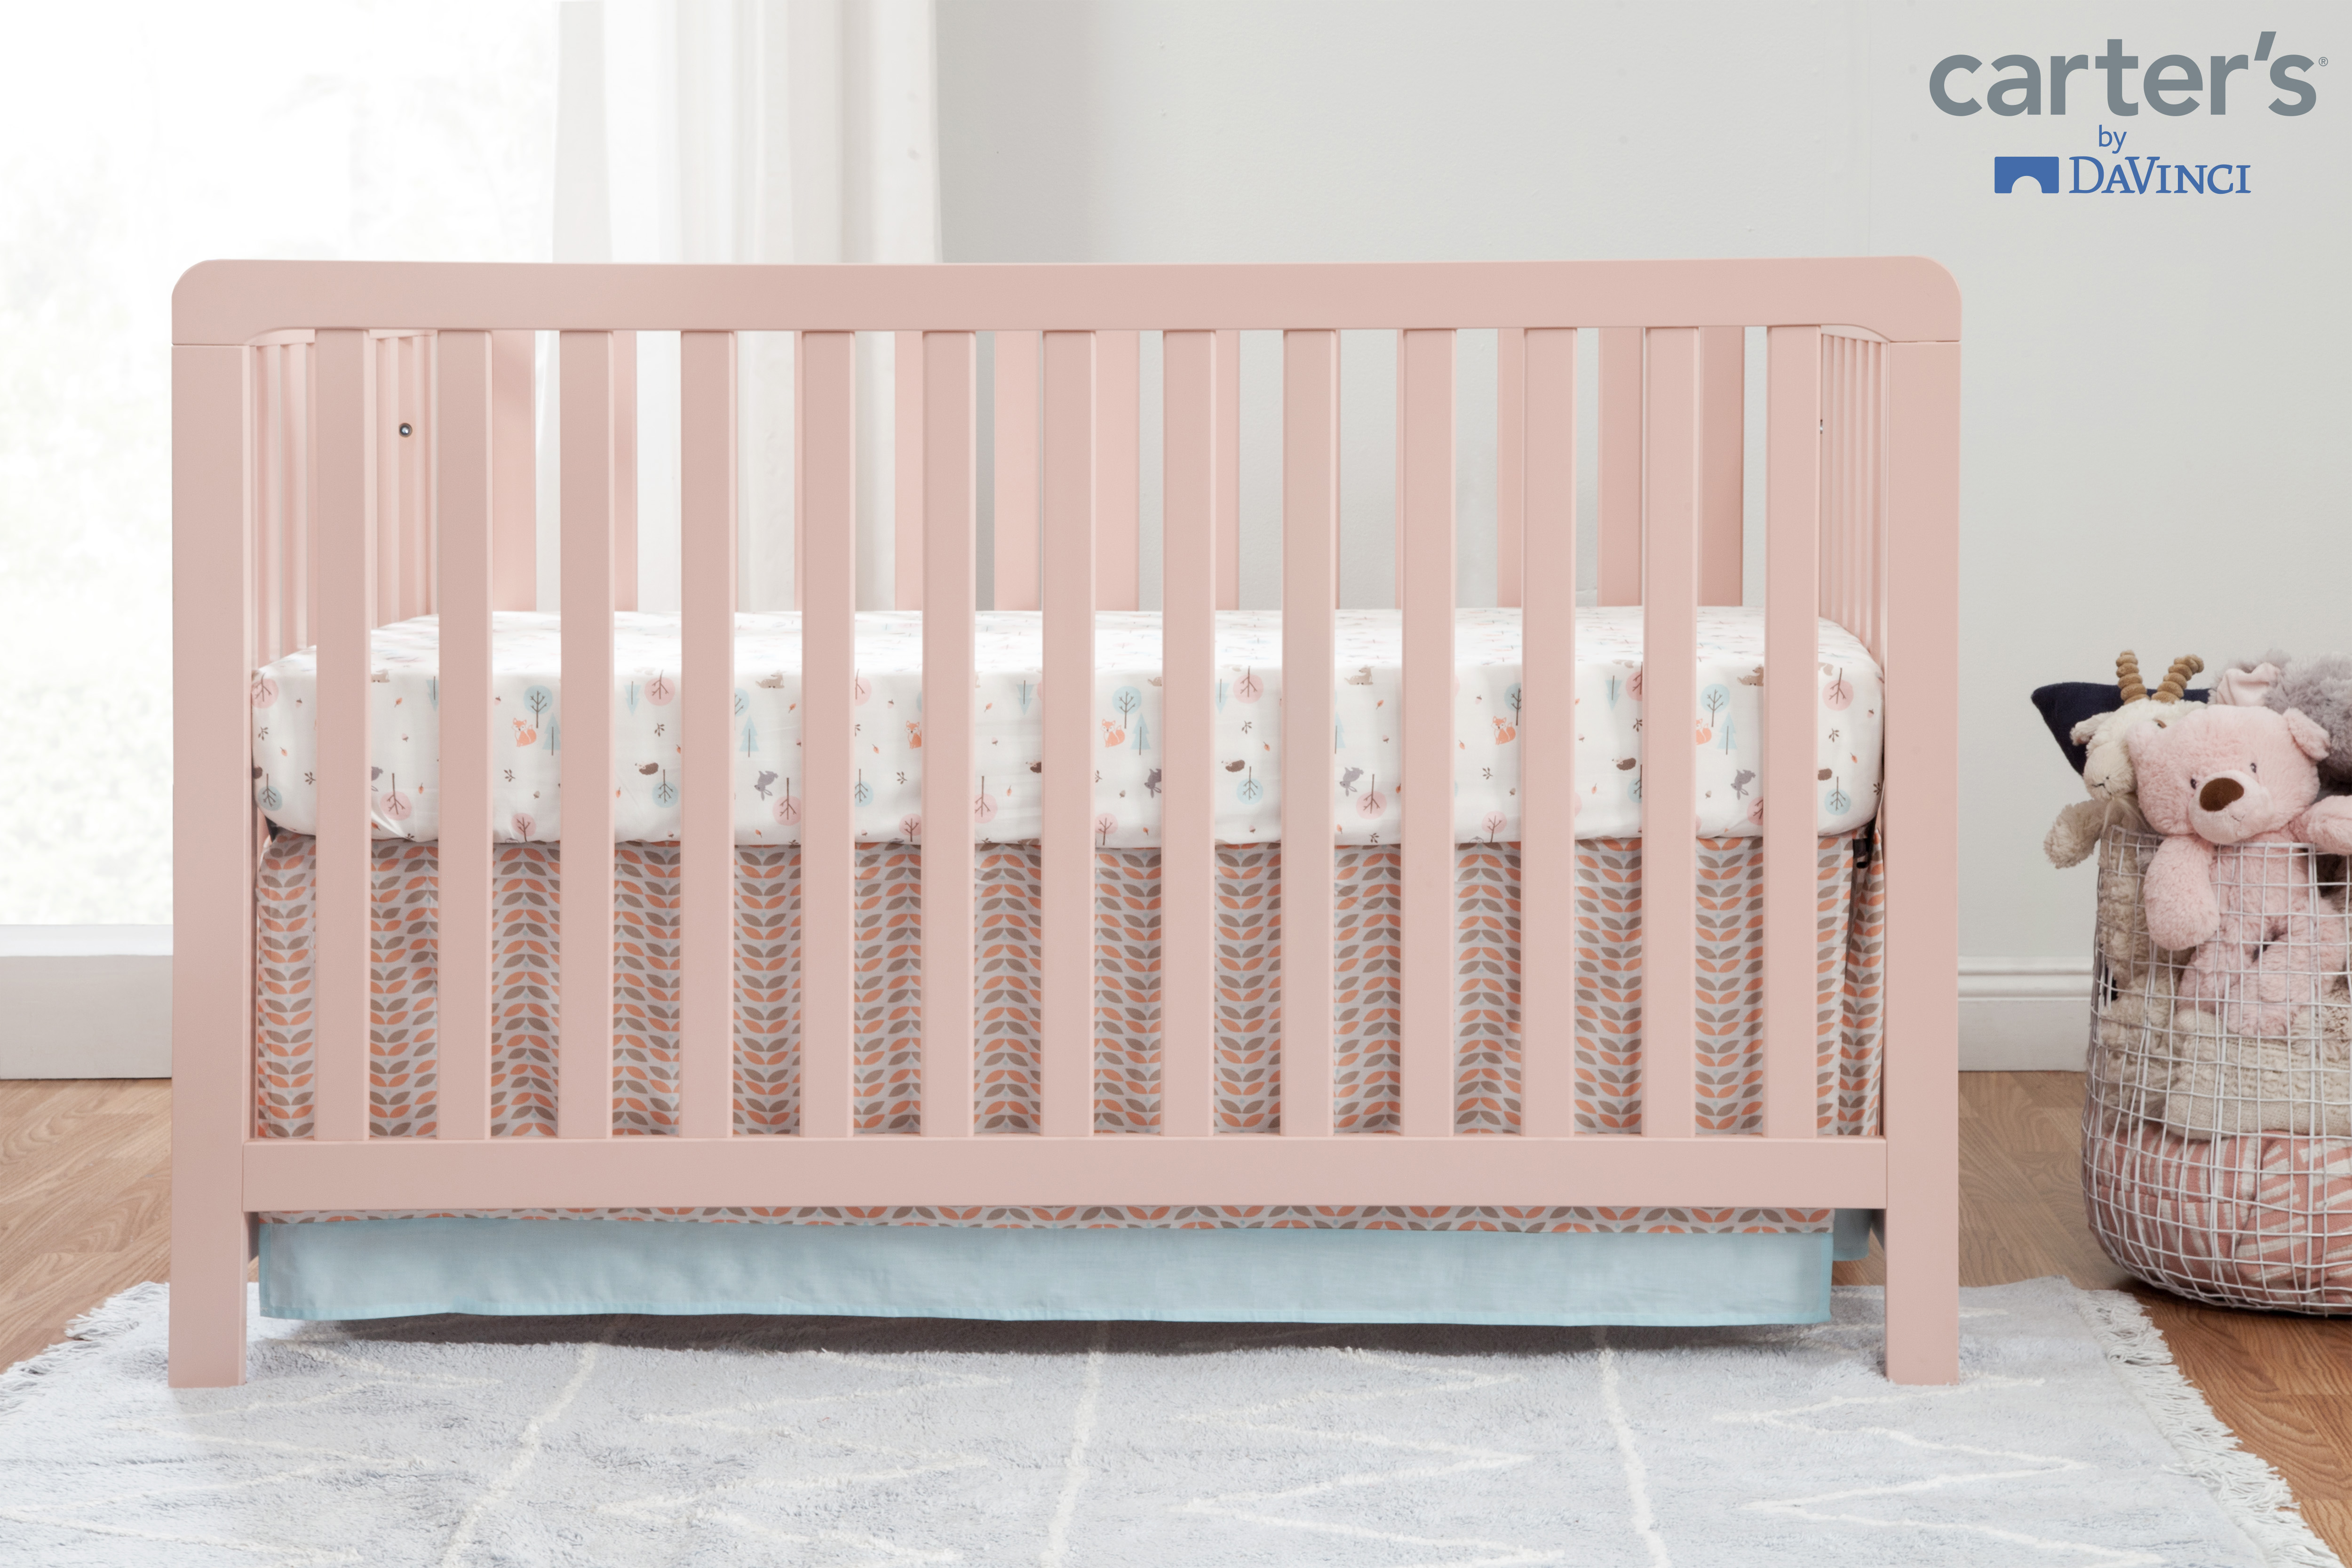 Carter S By Davinci Colby 4 In 1 Convertible Crib In Gray And White Walmart Com Walmart Com